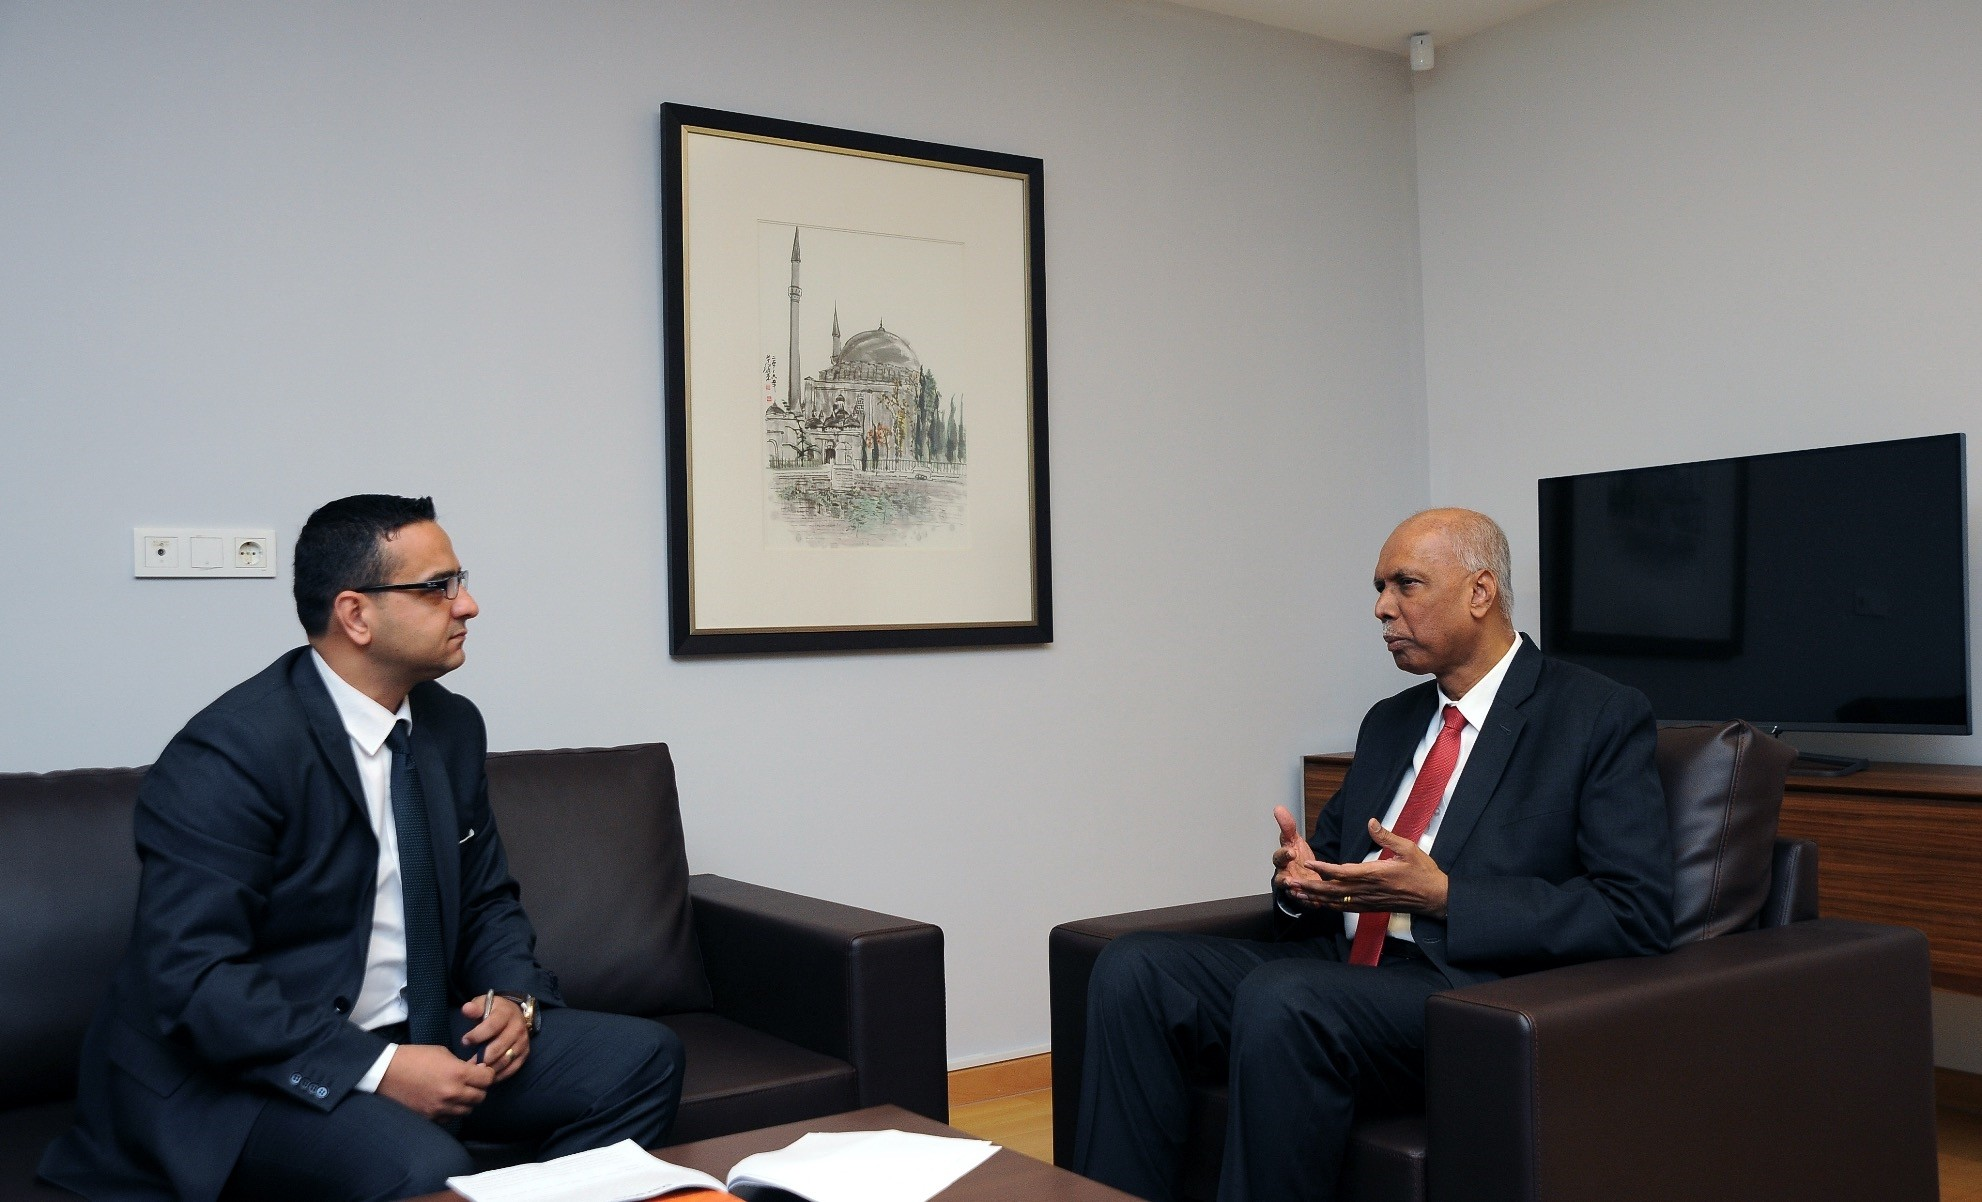 Ambassador Selverajah (R) said that Turkey and Singapore share common priorities for development, in areas such as infrastructure, healthcare, fintech and e-commerce.